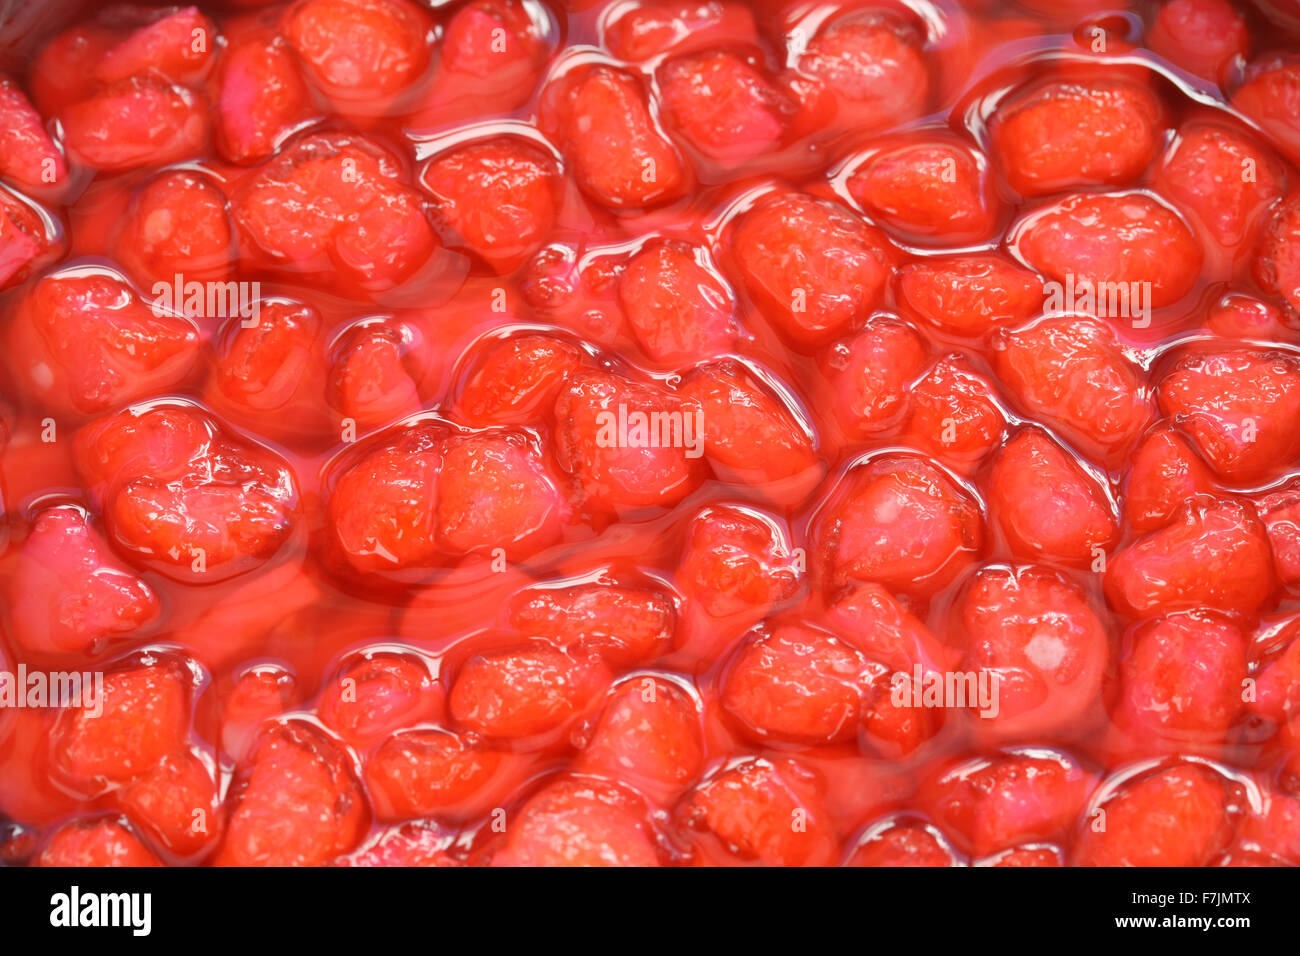 red ruby(tub tim krob) is a traditional dessert in thailand made with water chestnuts in coconut milk. - Stock Image